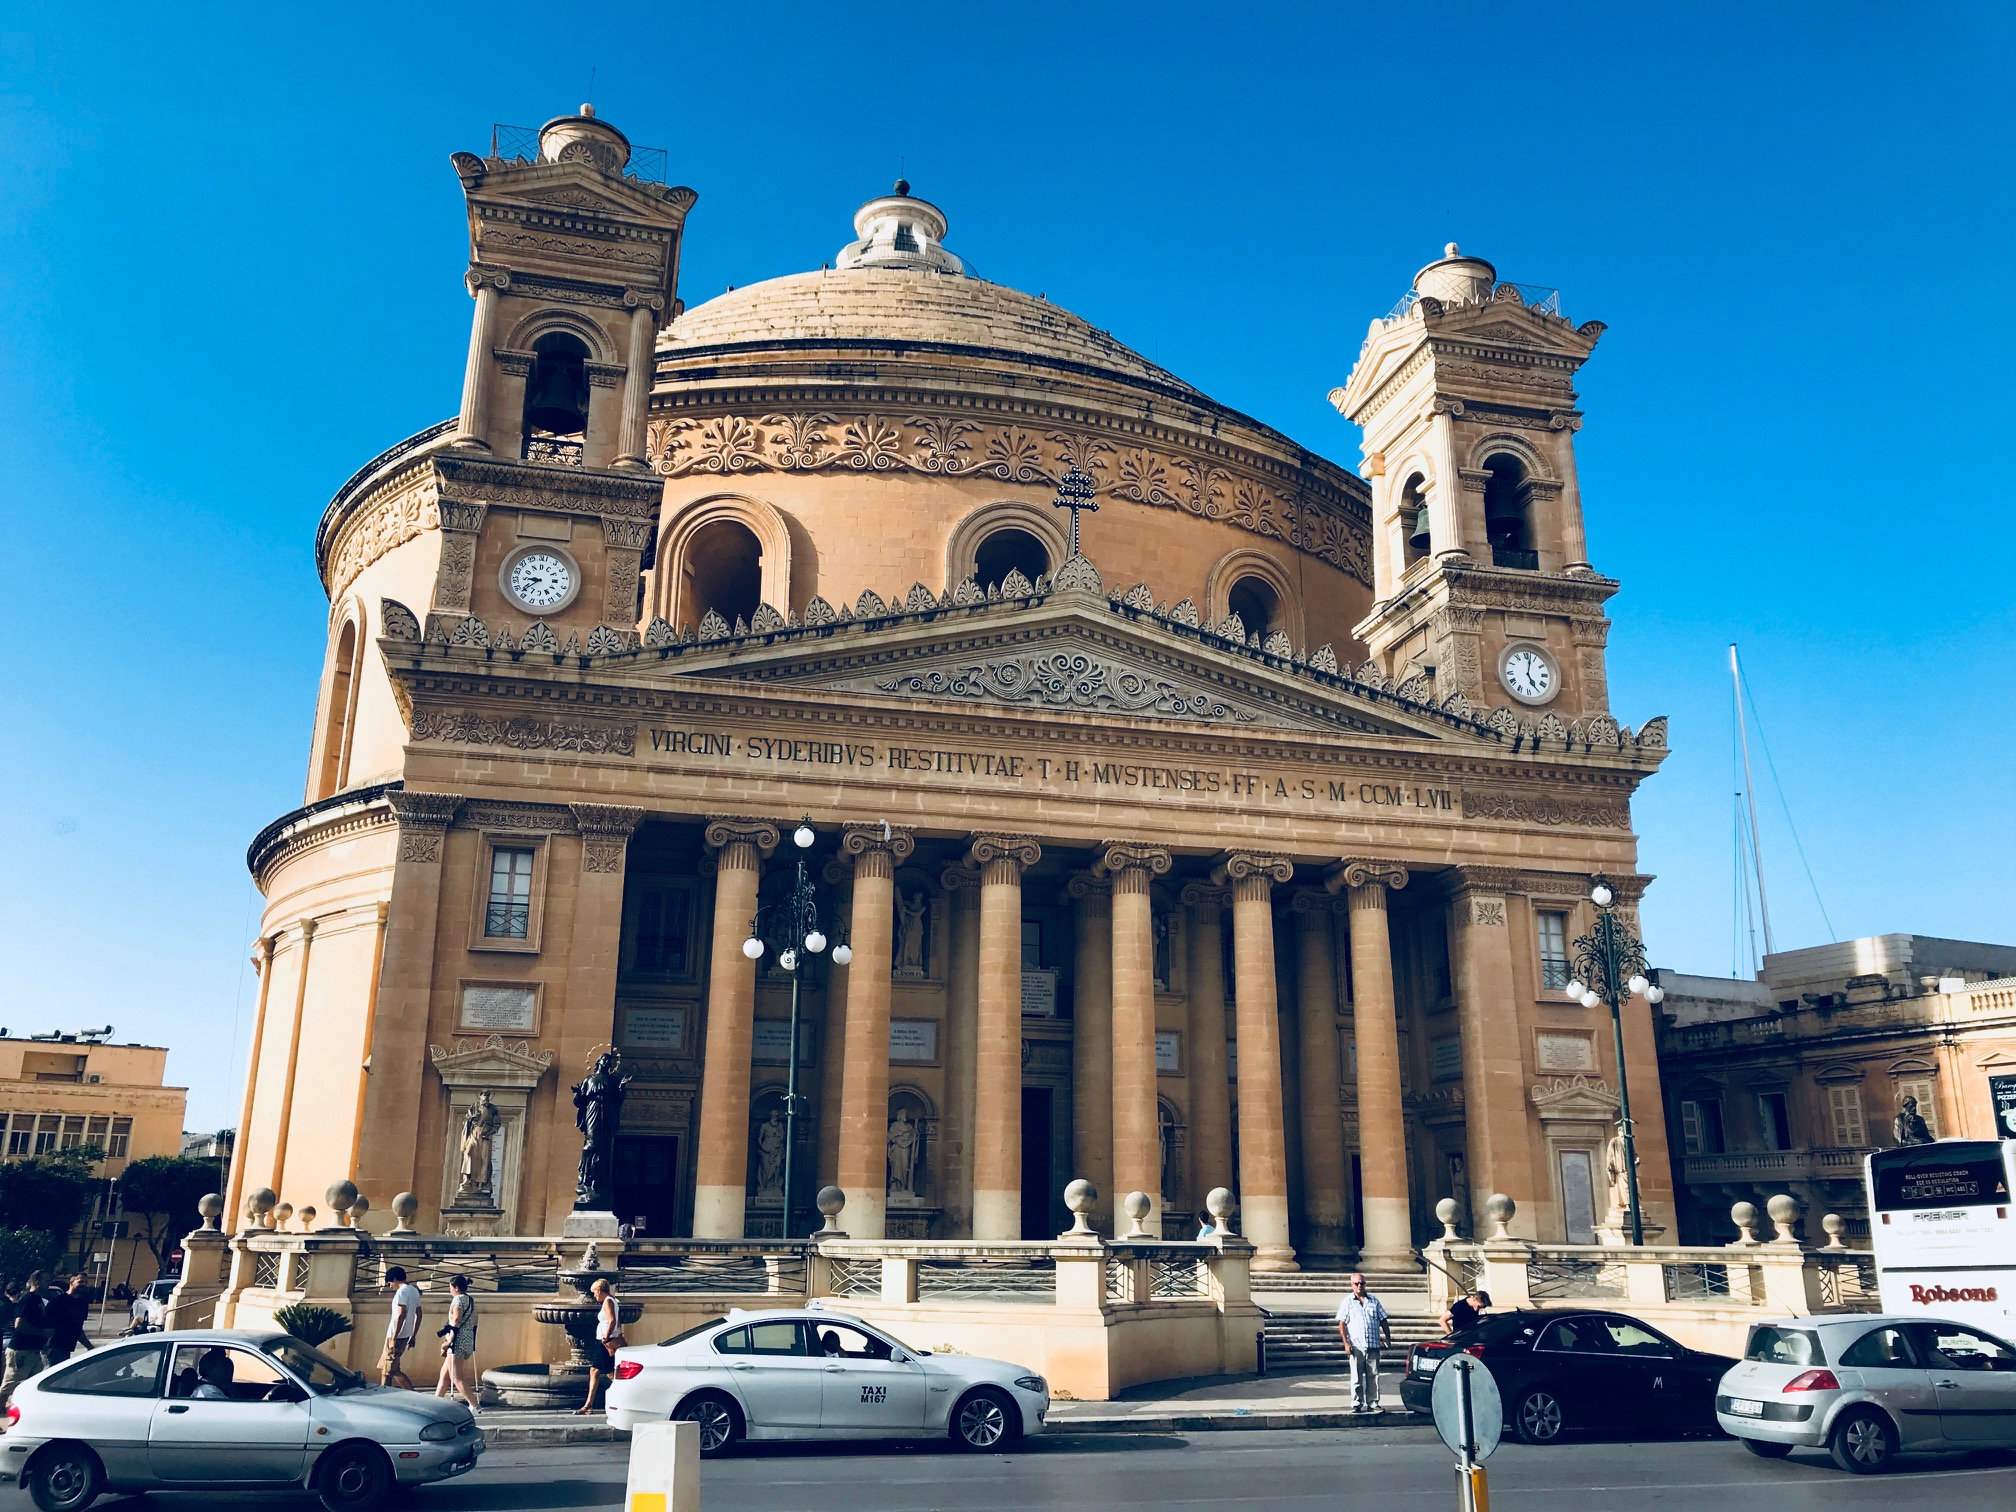 Rotunda of Mosta, Malta